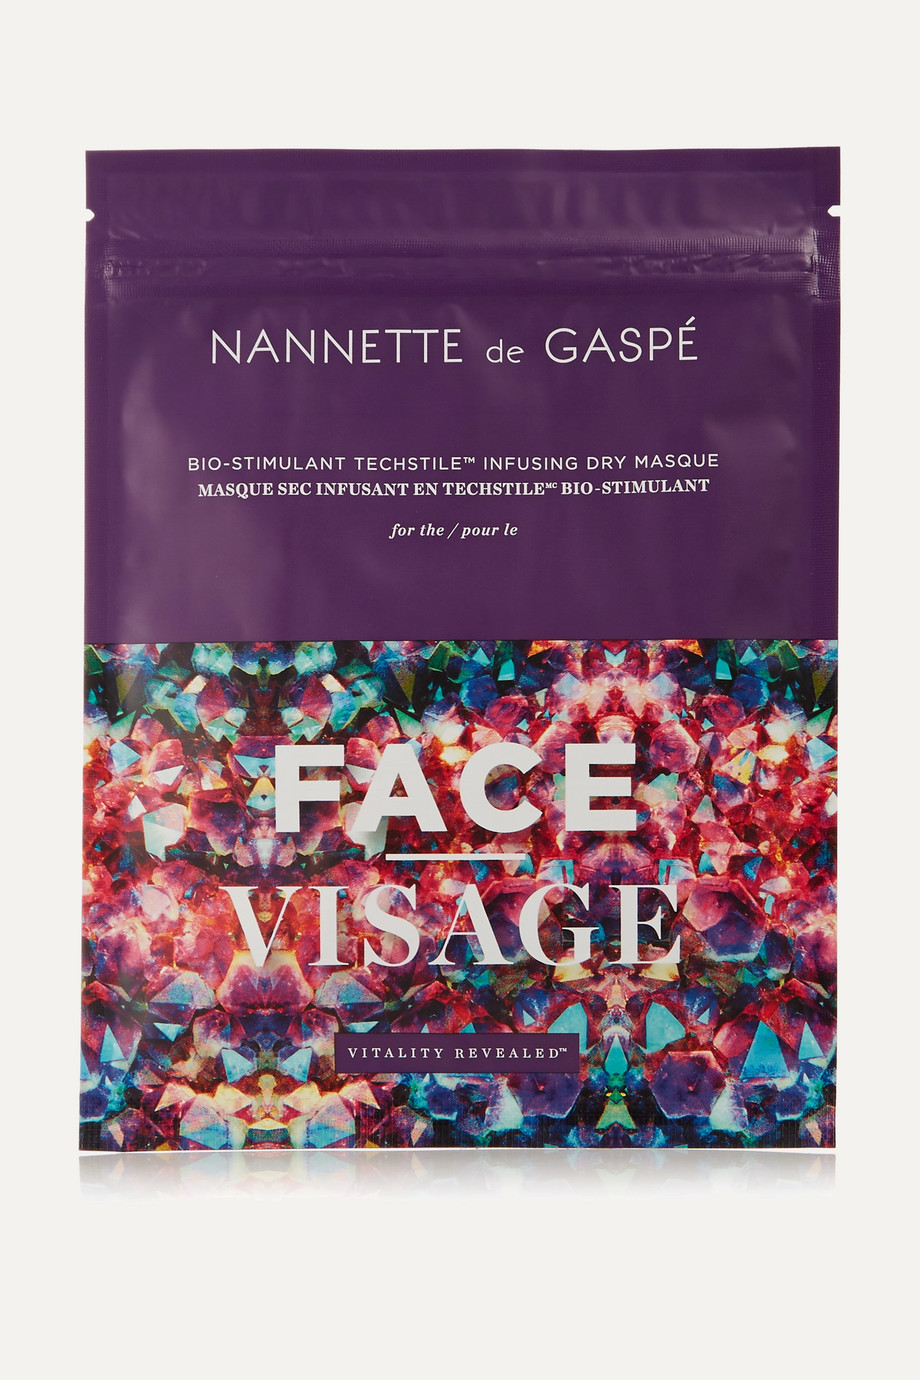 Nannette de Gaspé Vitality Revealed Bio-Stimulant Face Treatment